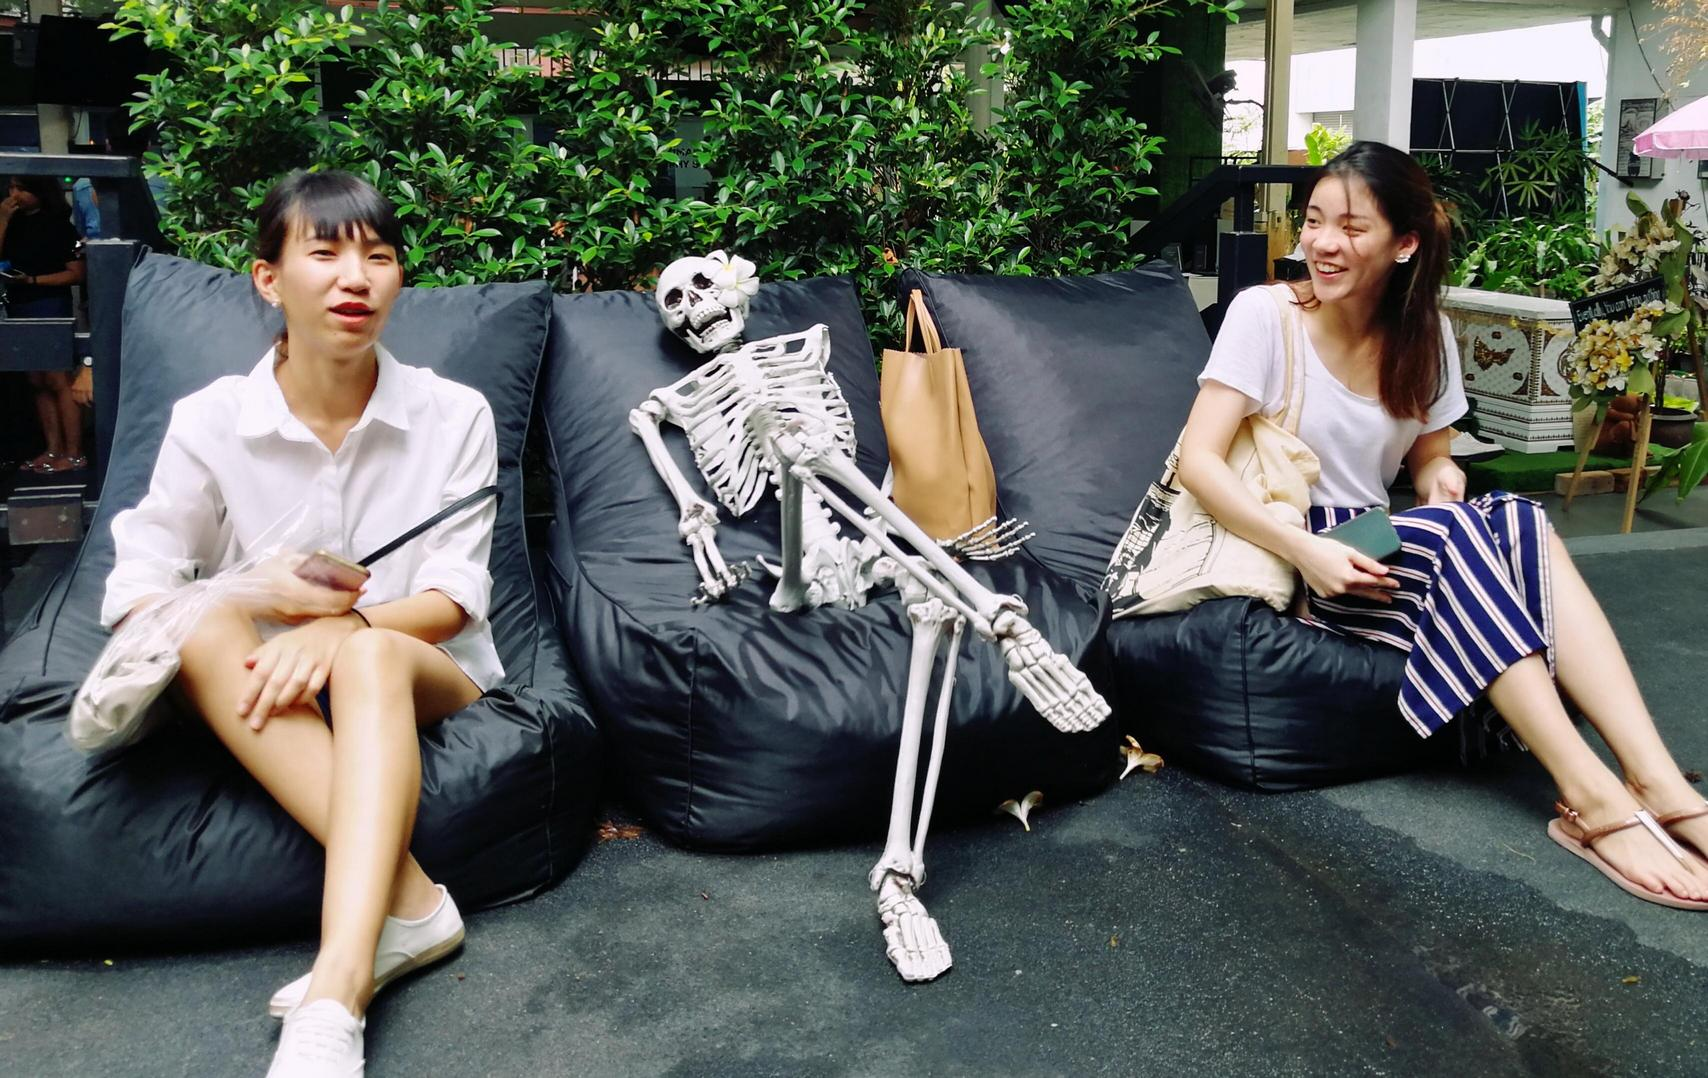 Try the feeling of death at this Bangkok coffee shop